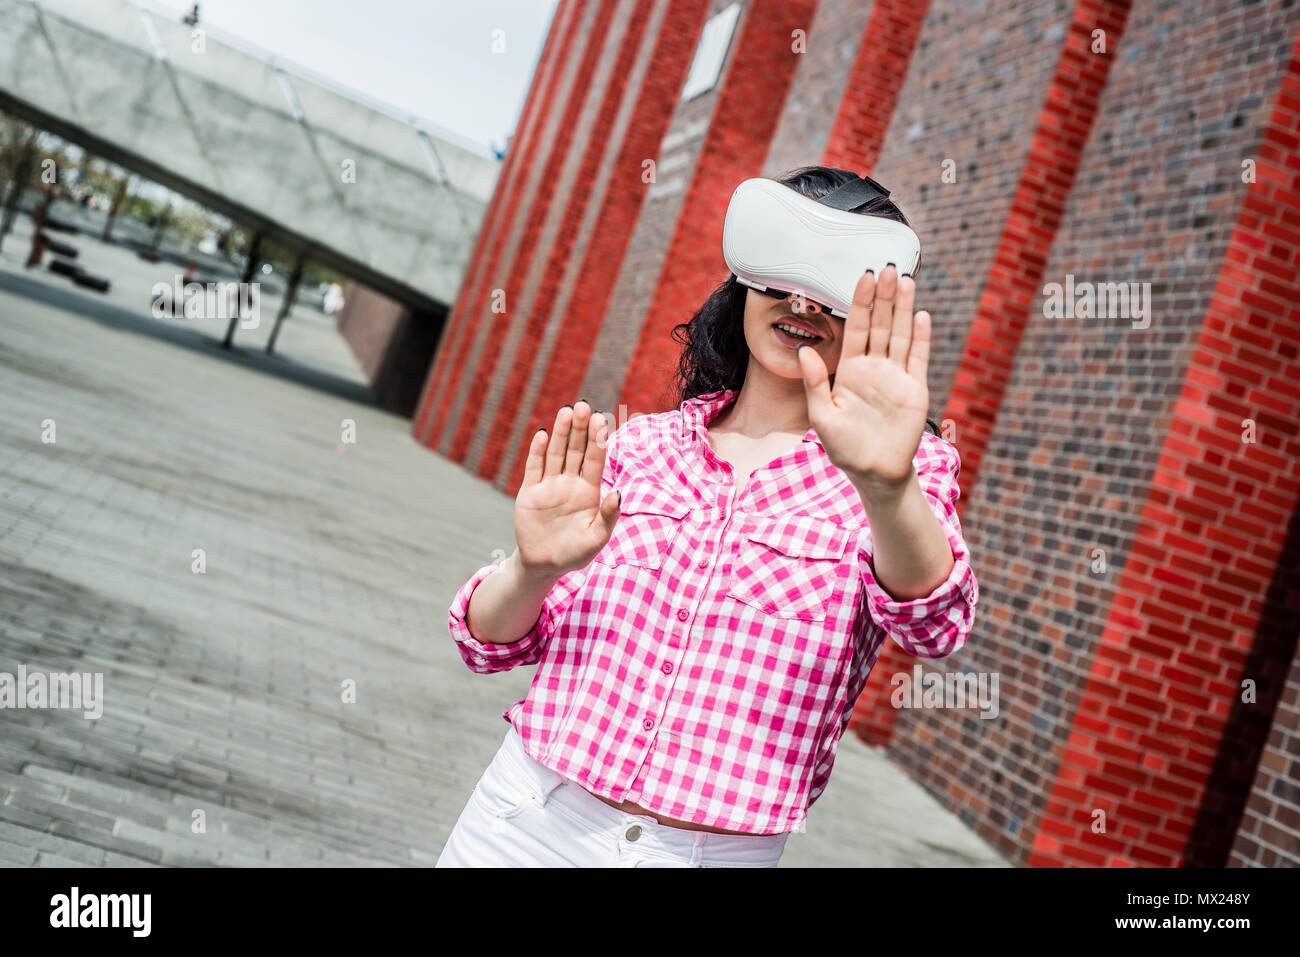 Virtual reality, fun in the park. A woman relaxes in the park using googles VR. The girl imagines that she is climbing the rope. Spending free time ou - Stock Image